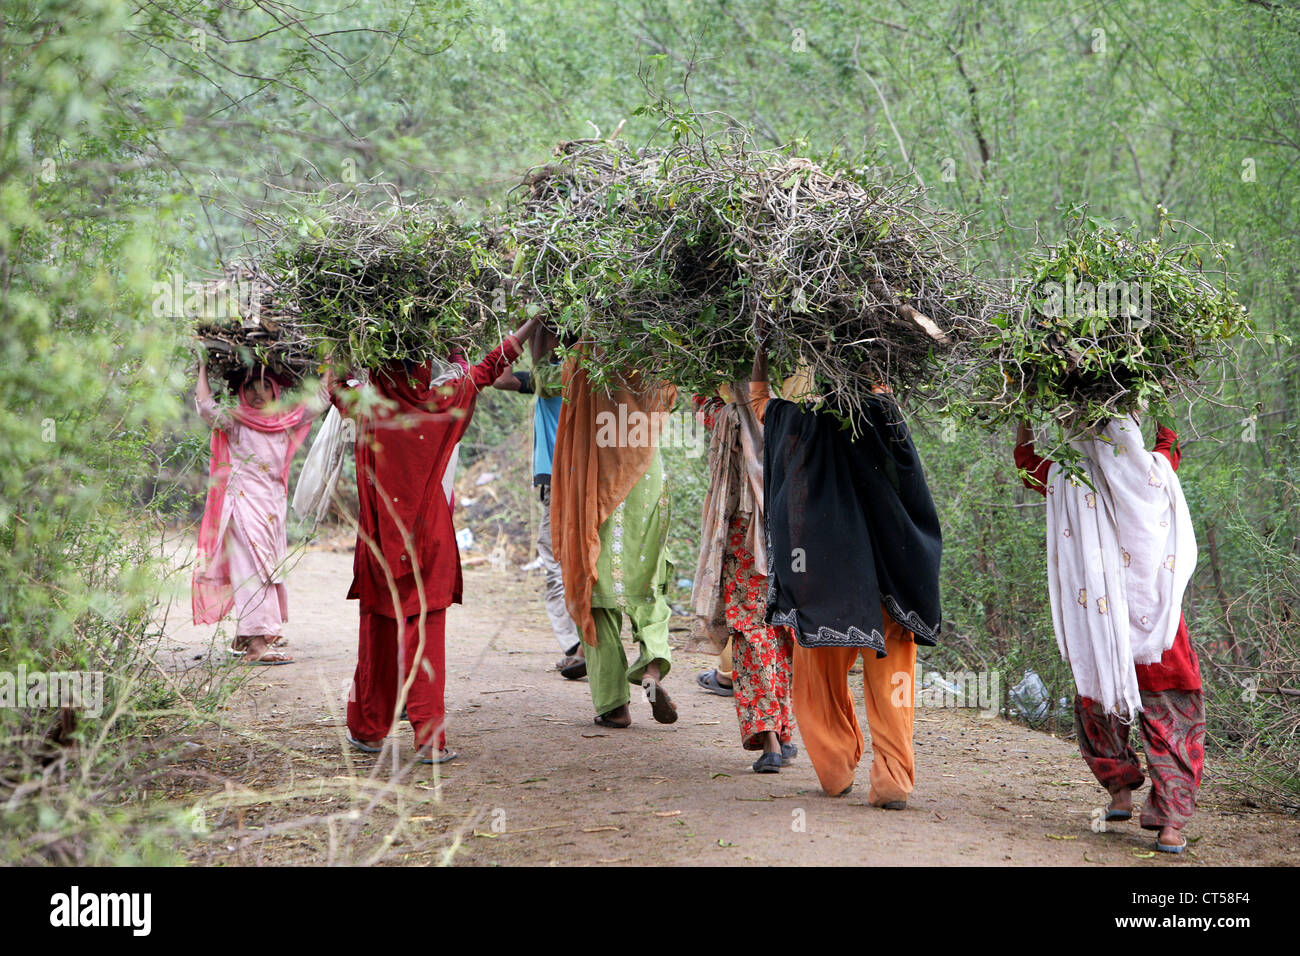 Women carrying collected firewood on her heads, Uttar Pradesh, India - Stock Image